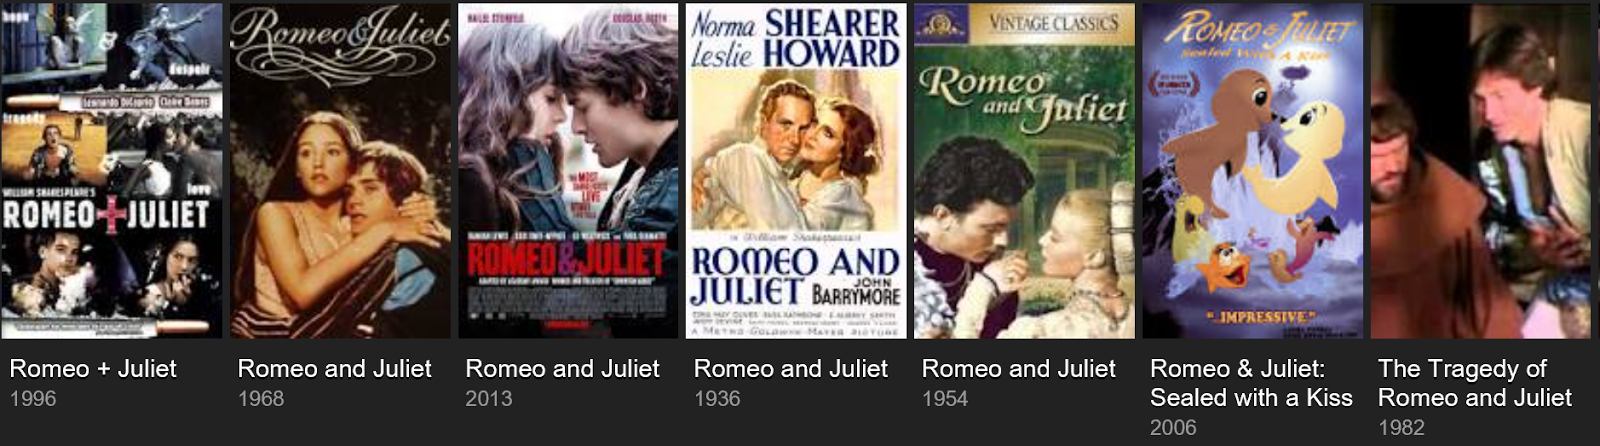 ideas for modernizing romeo and juliet